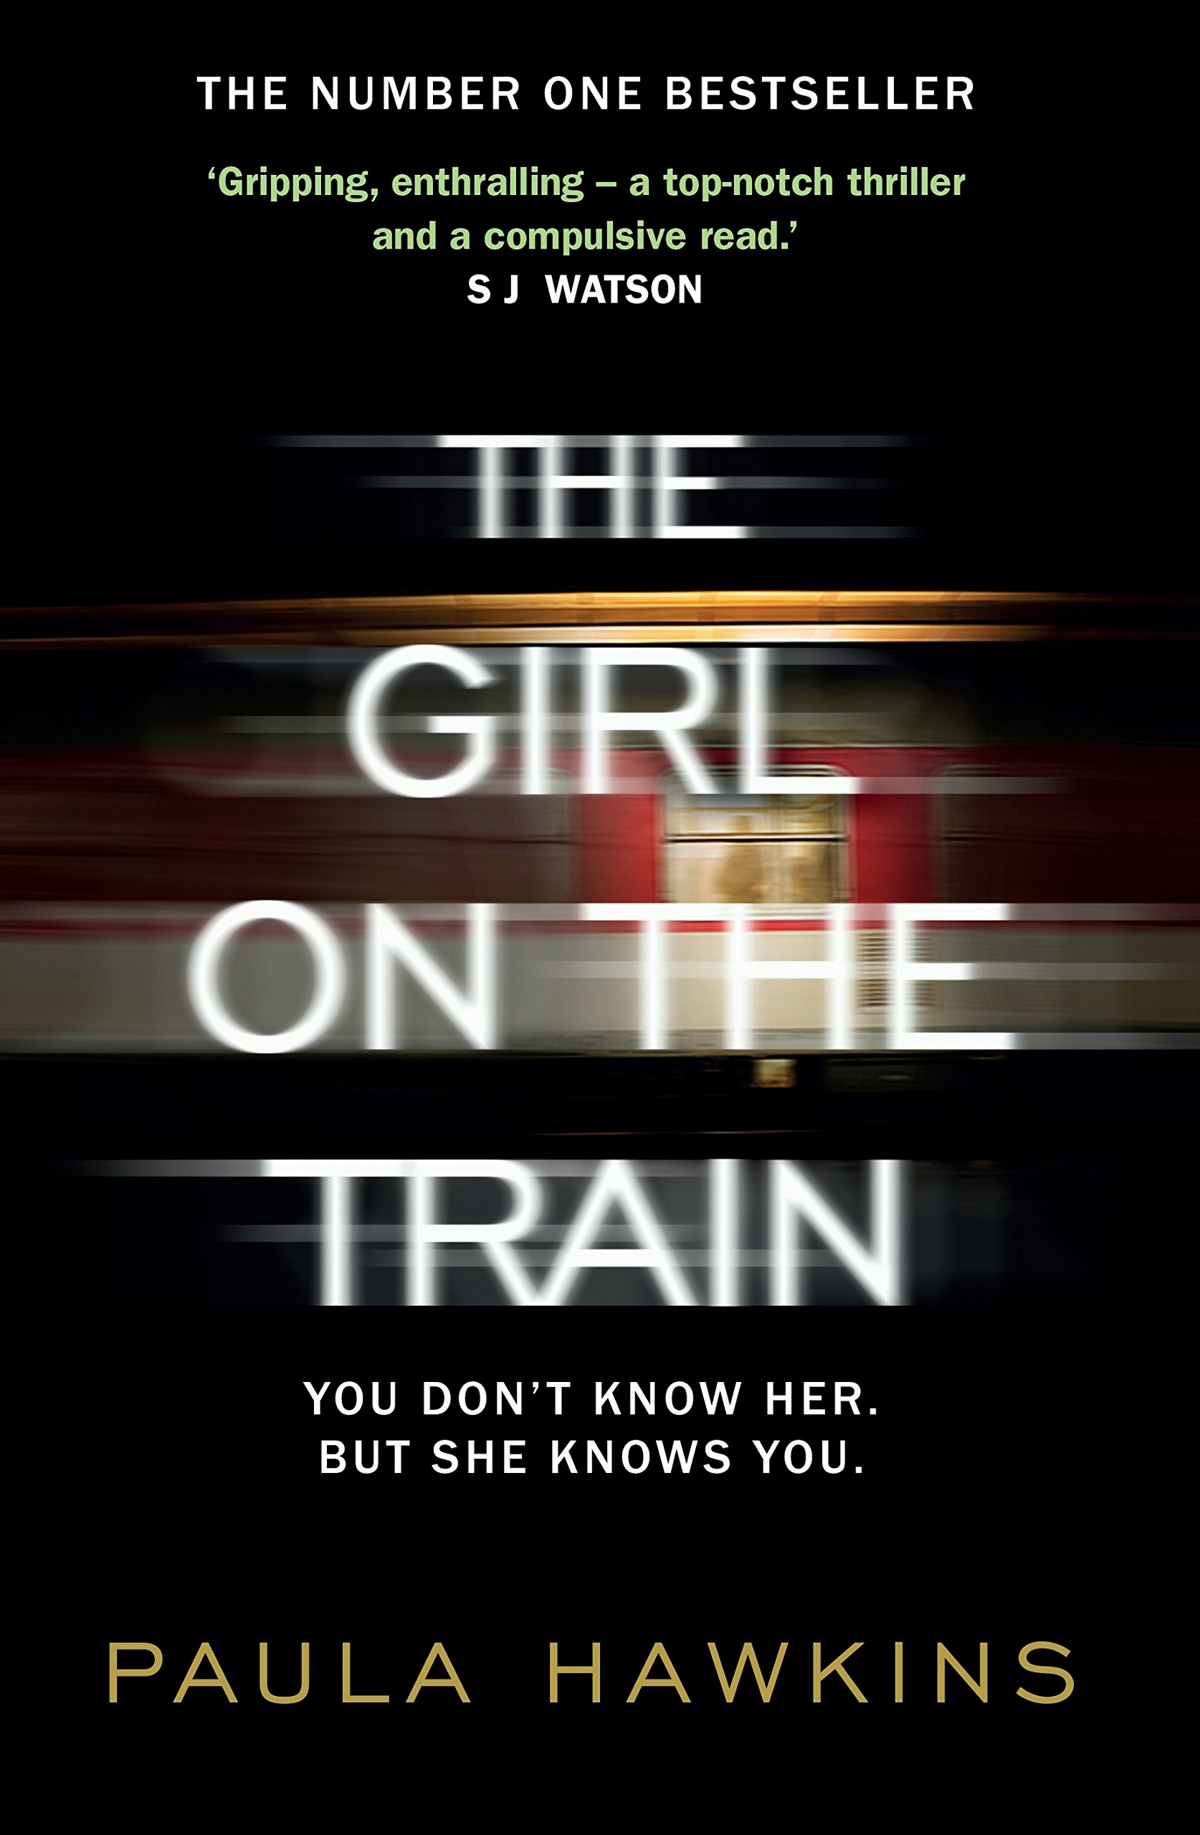 The Girl on the train de Paula Hawkins